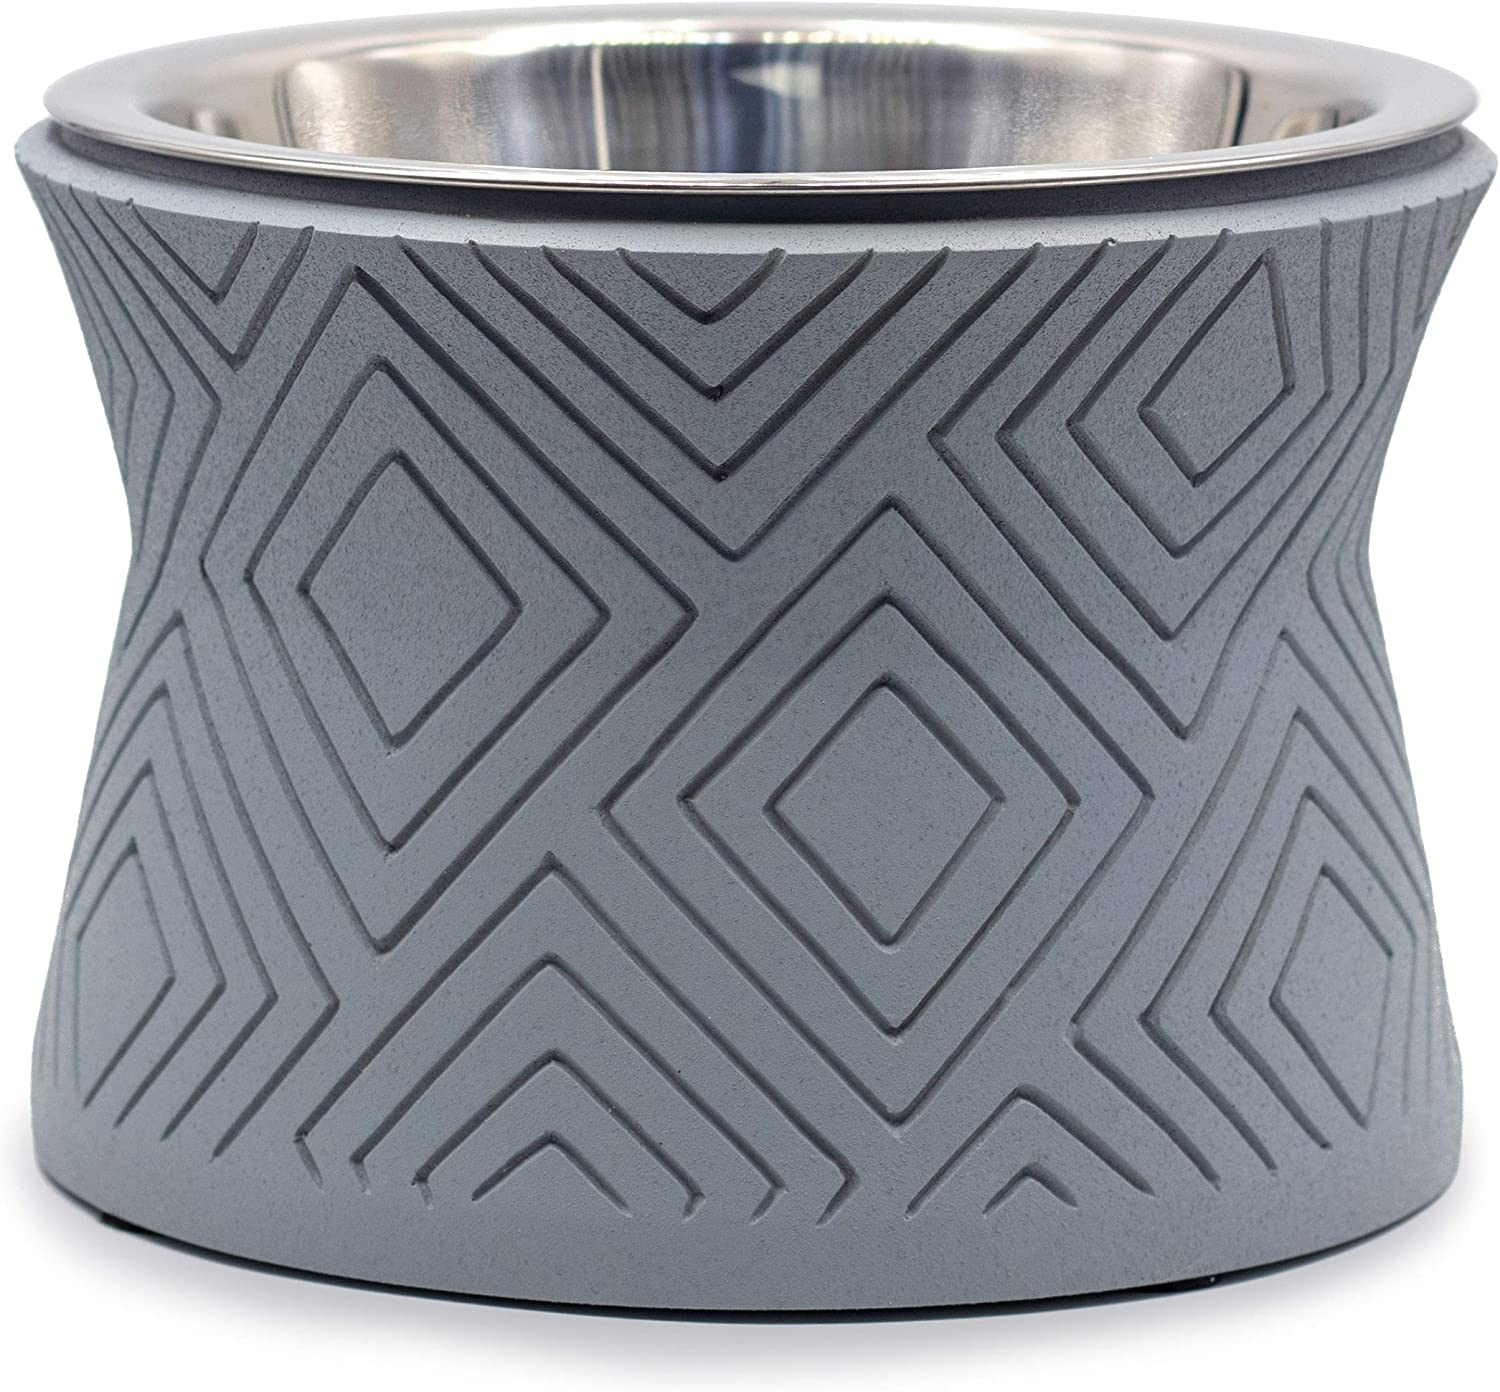 Pet Junkie Santa Fe Elevated Dog Bowl for Food and Water with Stainless Steel Washable Inner Bowl, Gray